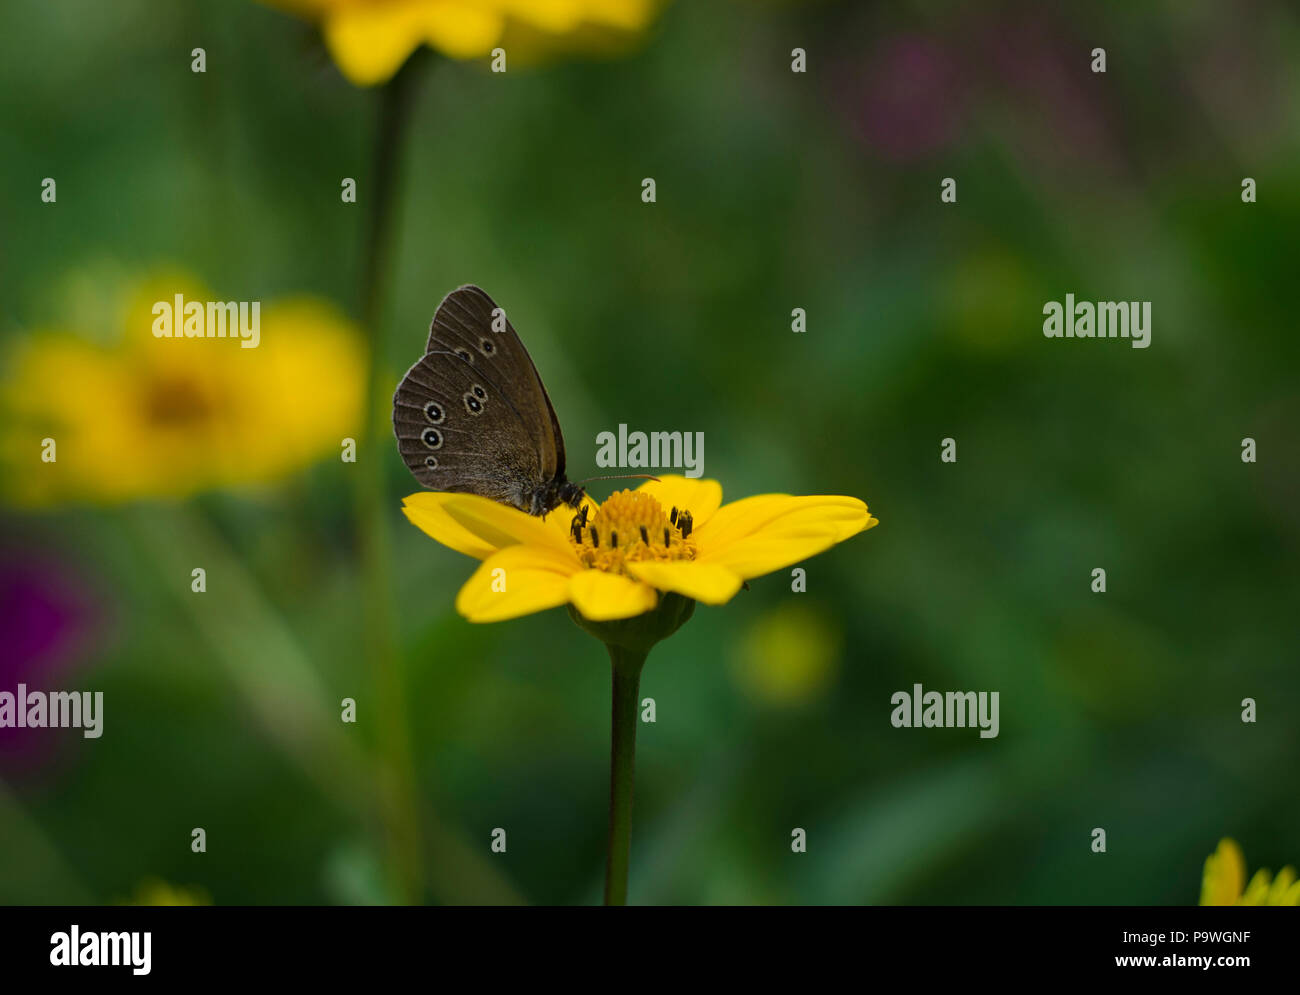 Aphantopus hyperantus butterfly sitting on the yellow flowers of sunflower aster family, Chrysopsis known as golden asters or Heterotheca villosa, mac - Stock Image